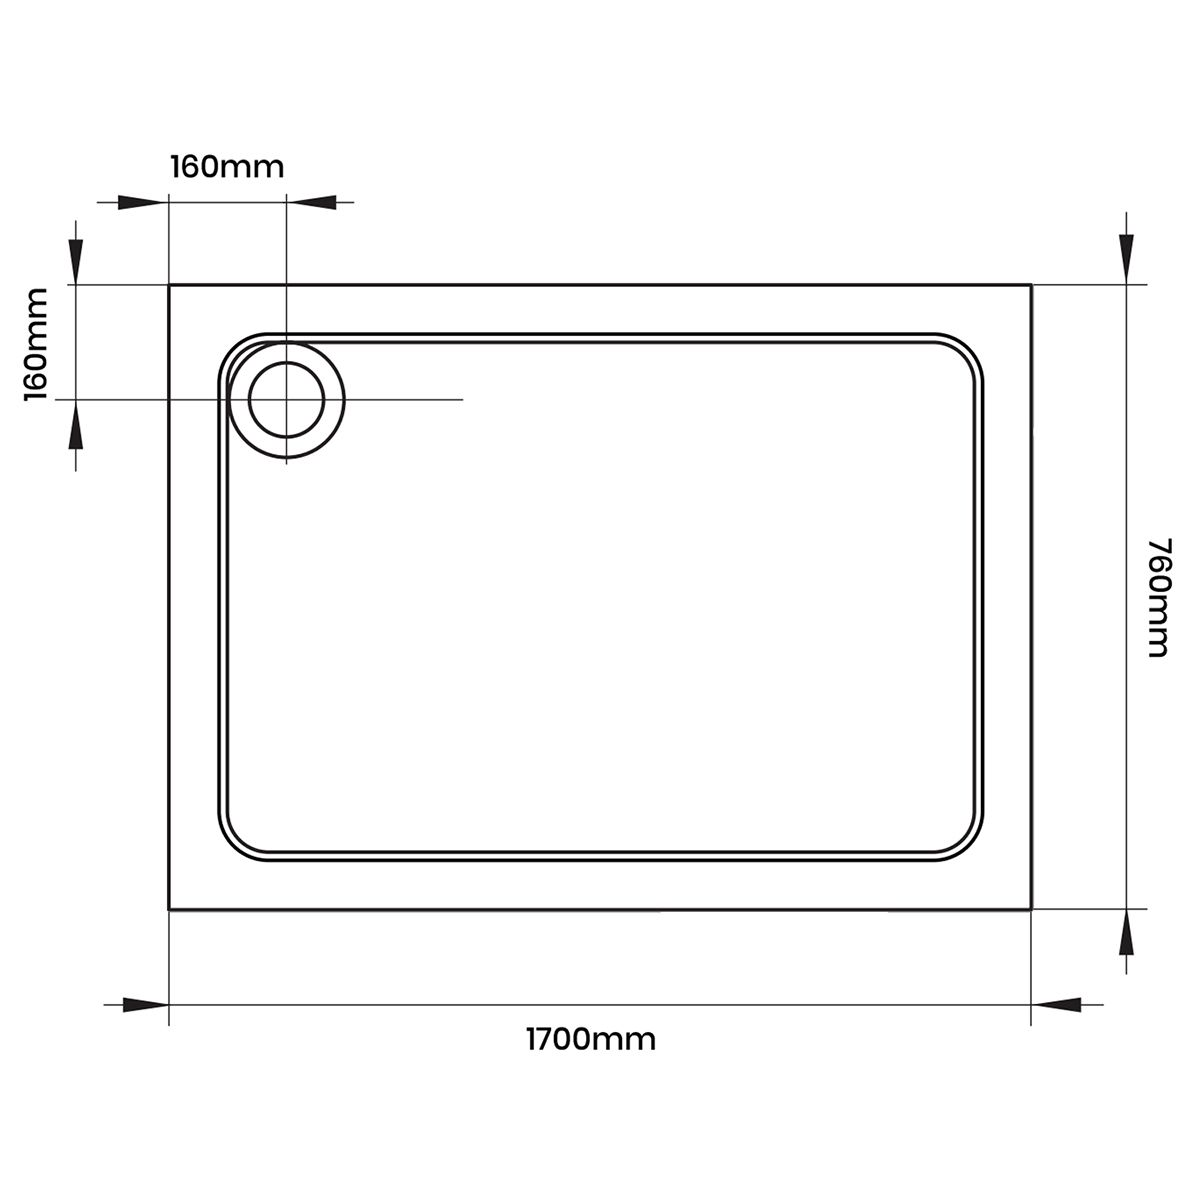 Aquadart Rectangular 1700 x 760 Shower Tray